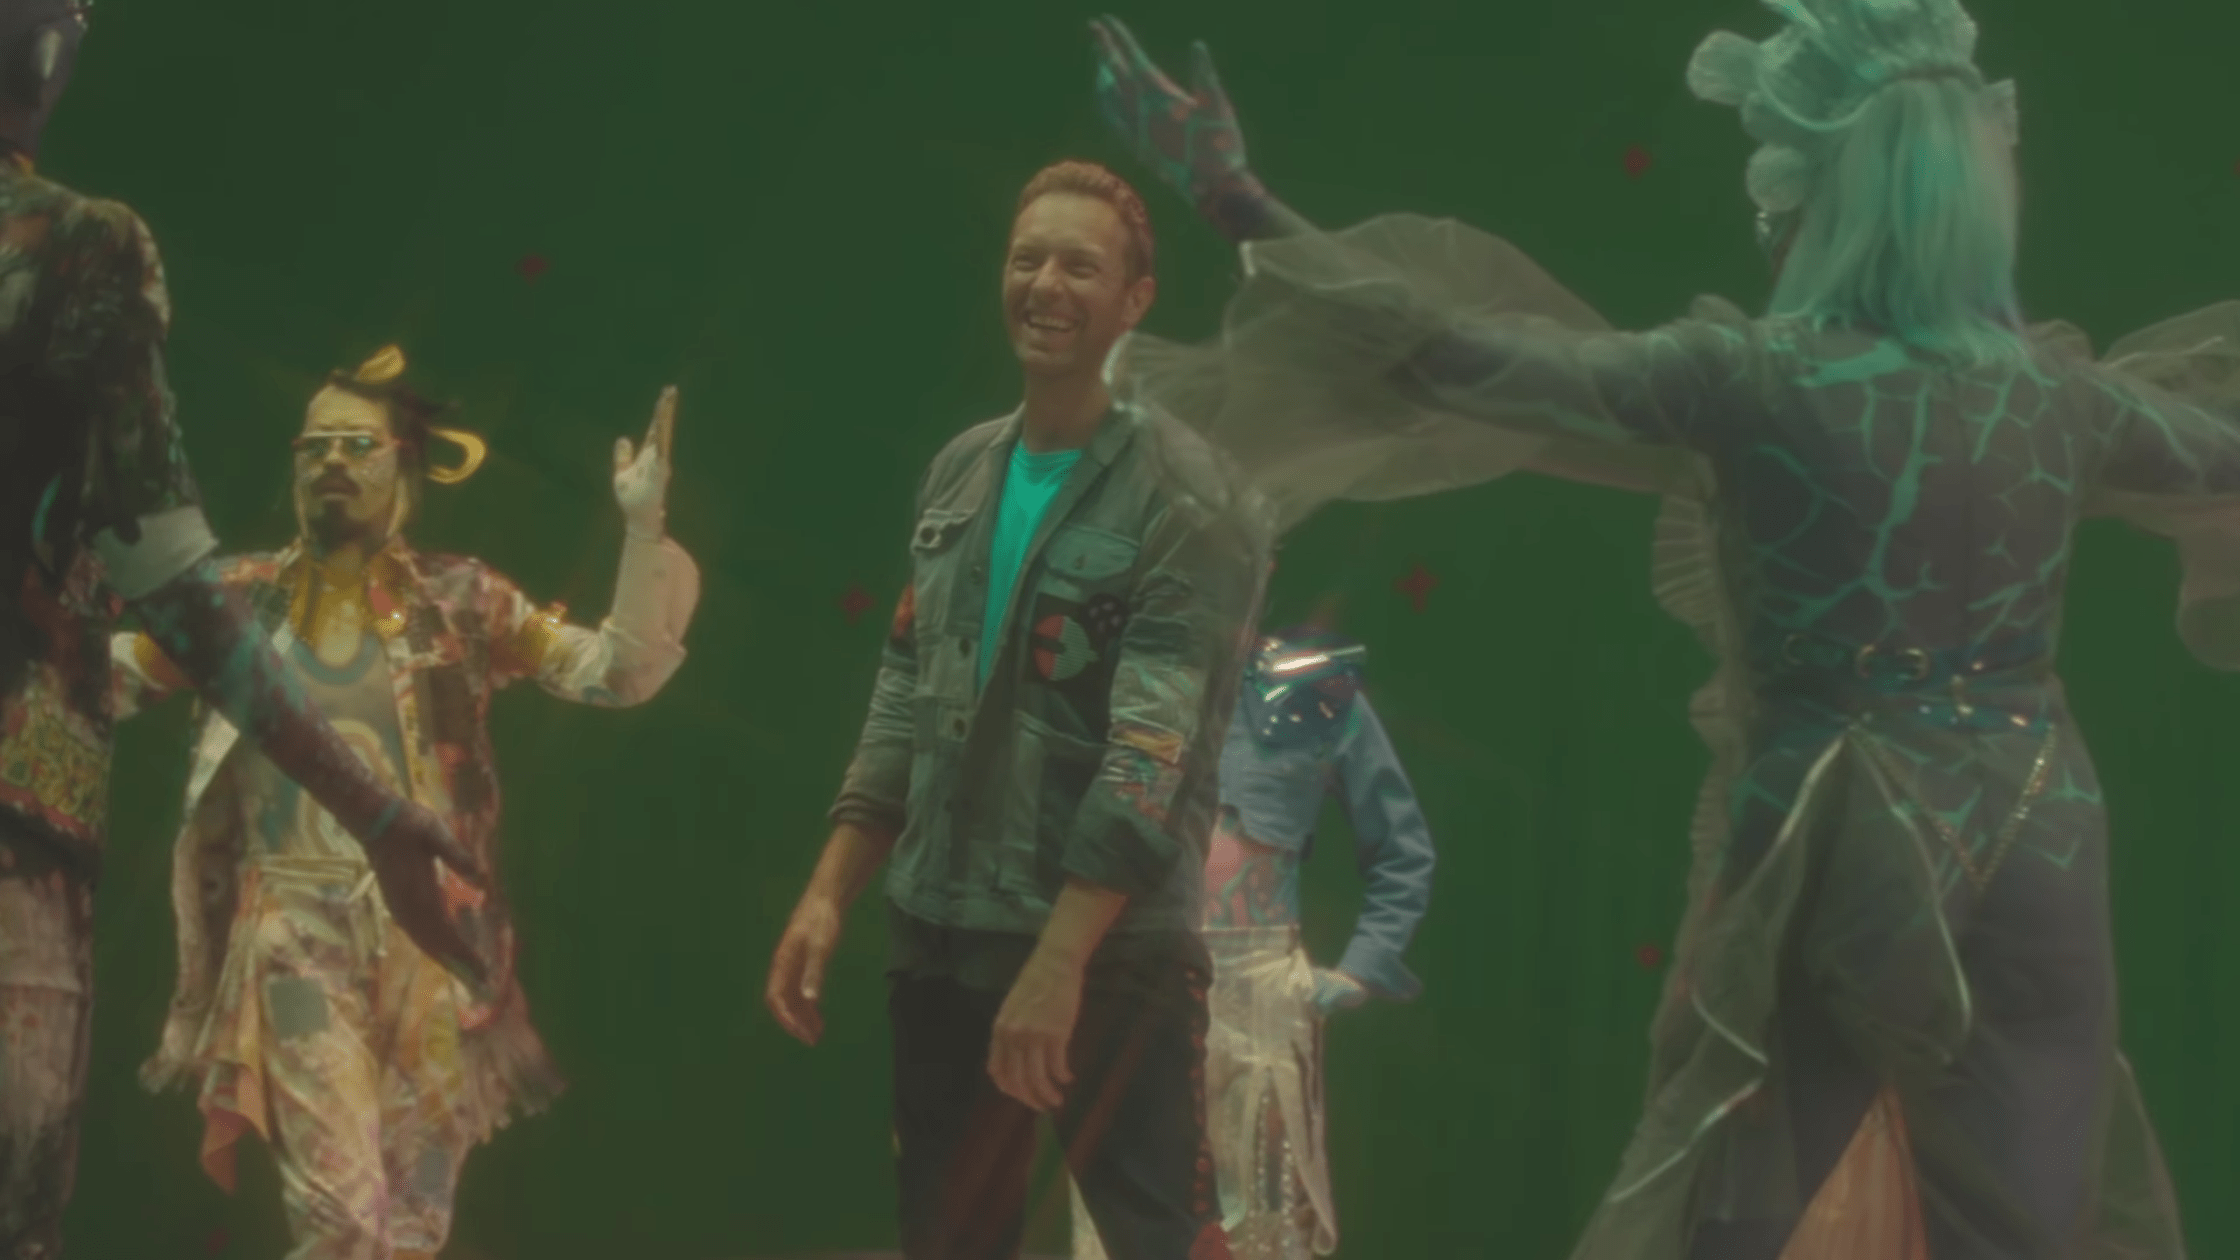 Go on set of Coldplay's 'Higher Power' music video